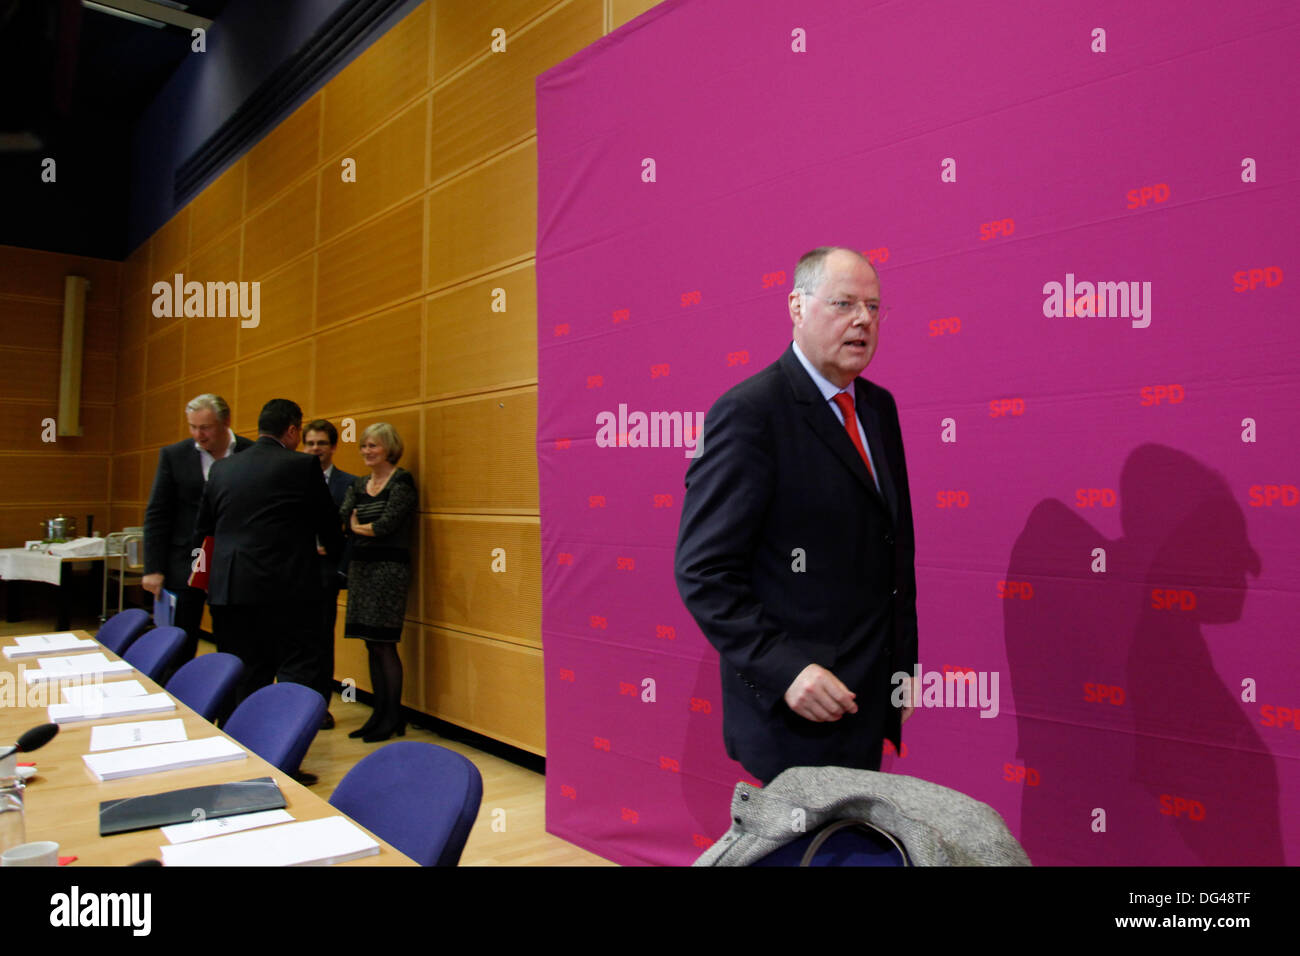 Berlin, Germany. 14th October, 2013. Meeting of the SPD party executive committee in the Willy Brandt house in Berlin. / Picture: Peer Steinbrueck (SPD), SPD. Credit:  Reynaldo Chaib Paganelli/Alamy Live News - Stock Image